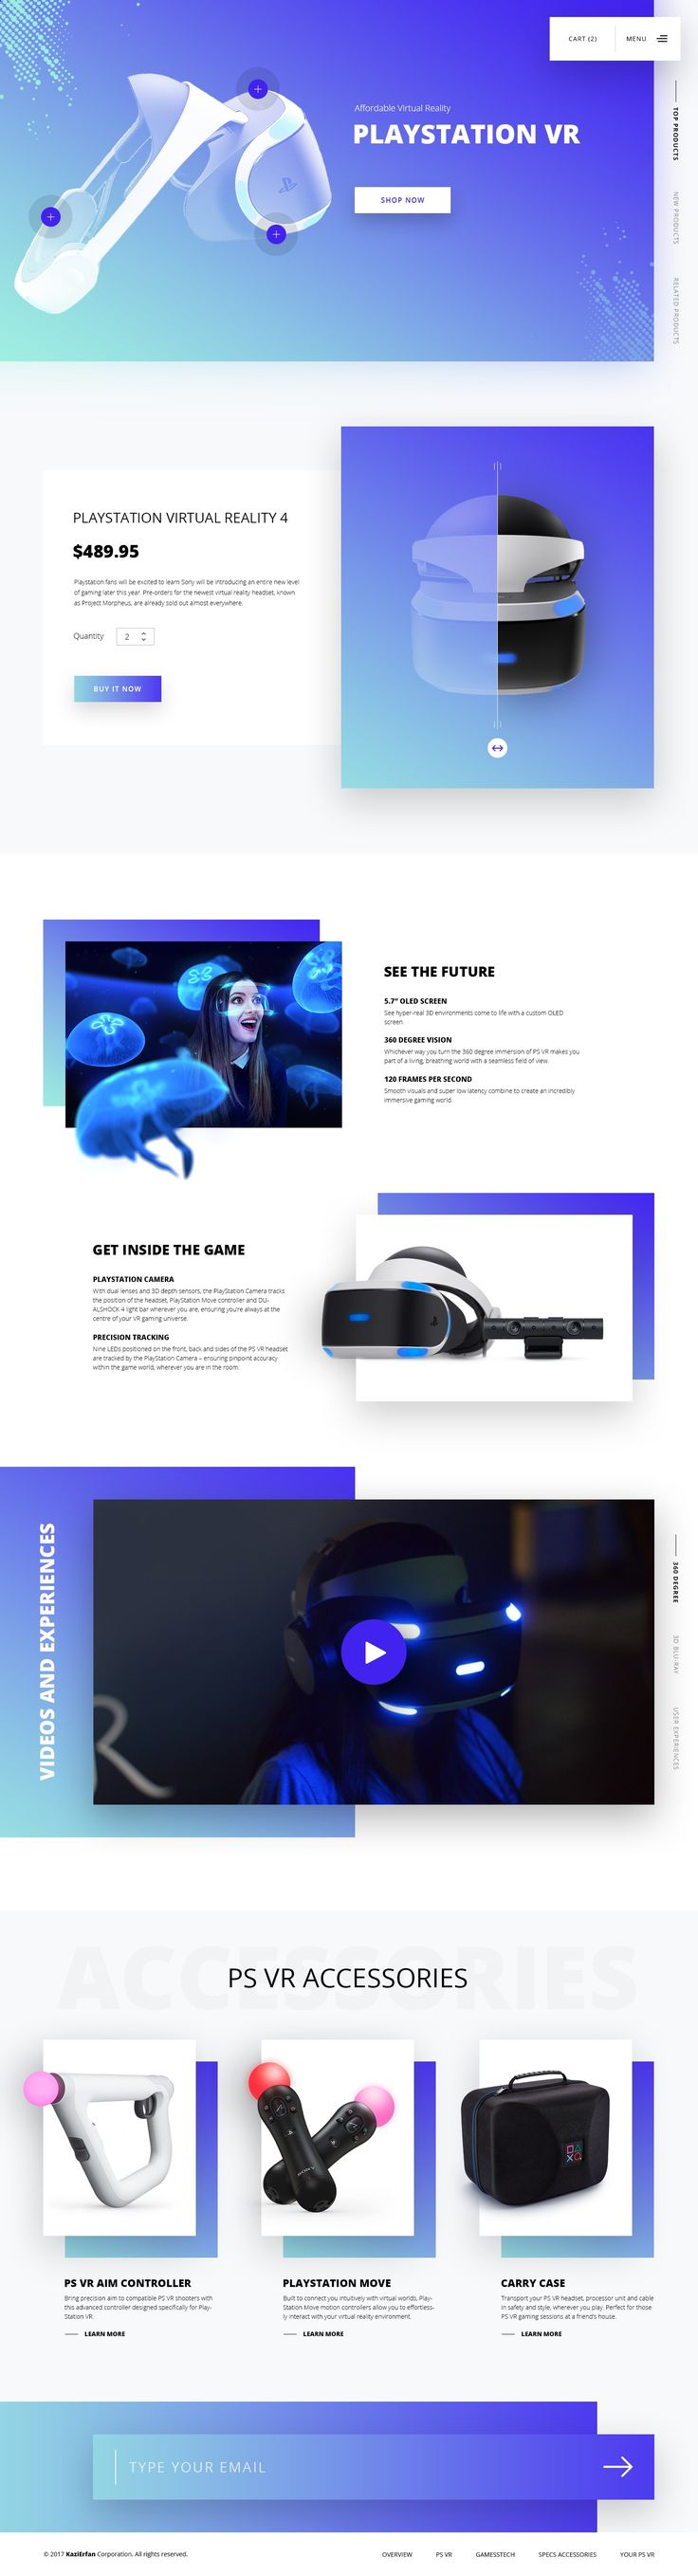 Virtual Reality Glasses - Nowadays Im researching on Virtual Reality a lot. Heres a glimpse of PlayStation VR website concept. This Wednesday, October 11, the virtual reality company of Facebook Oculus Connect , announced during its annual event some interesting news that come to innovate in the world of virtual reality.